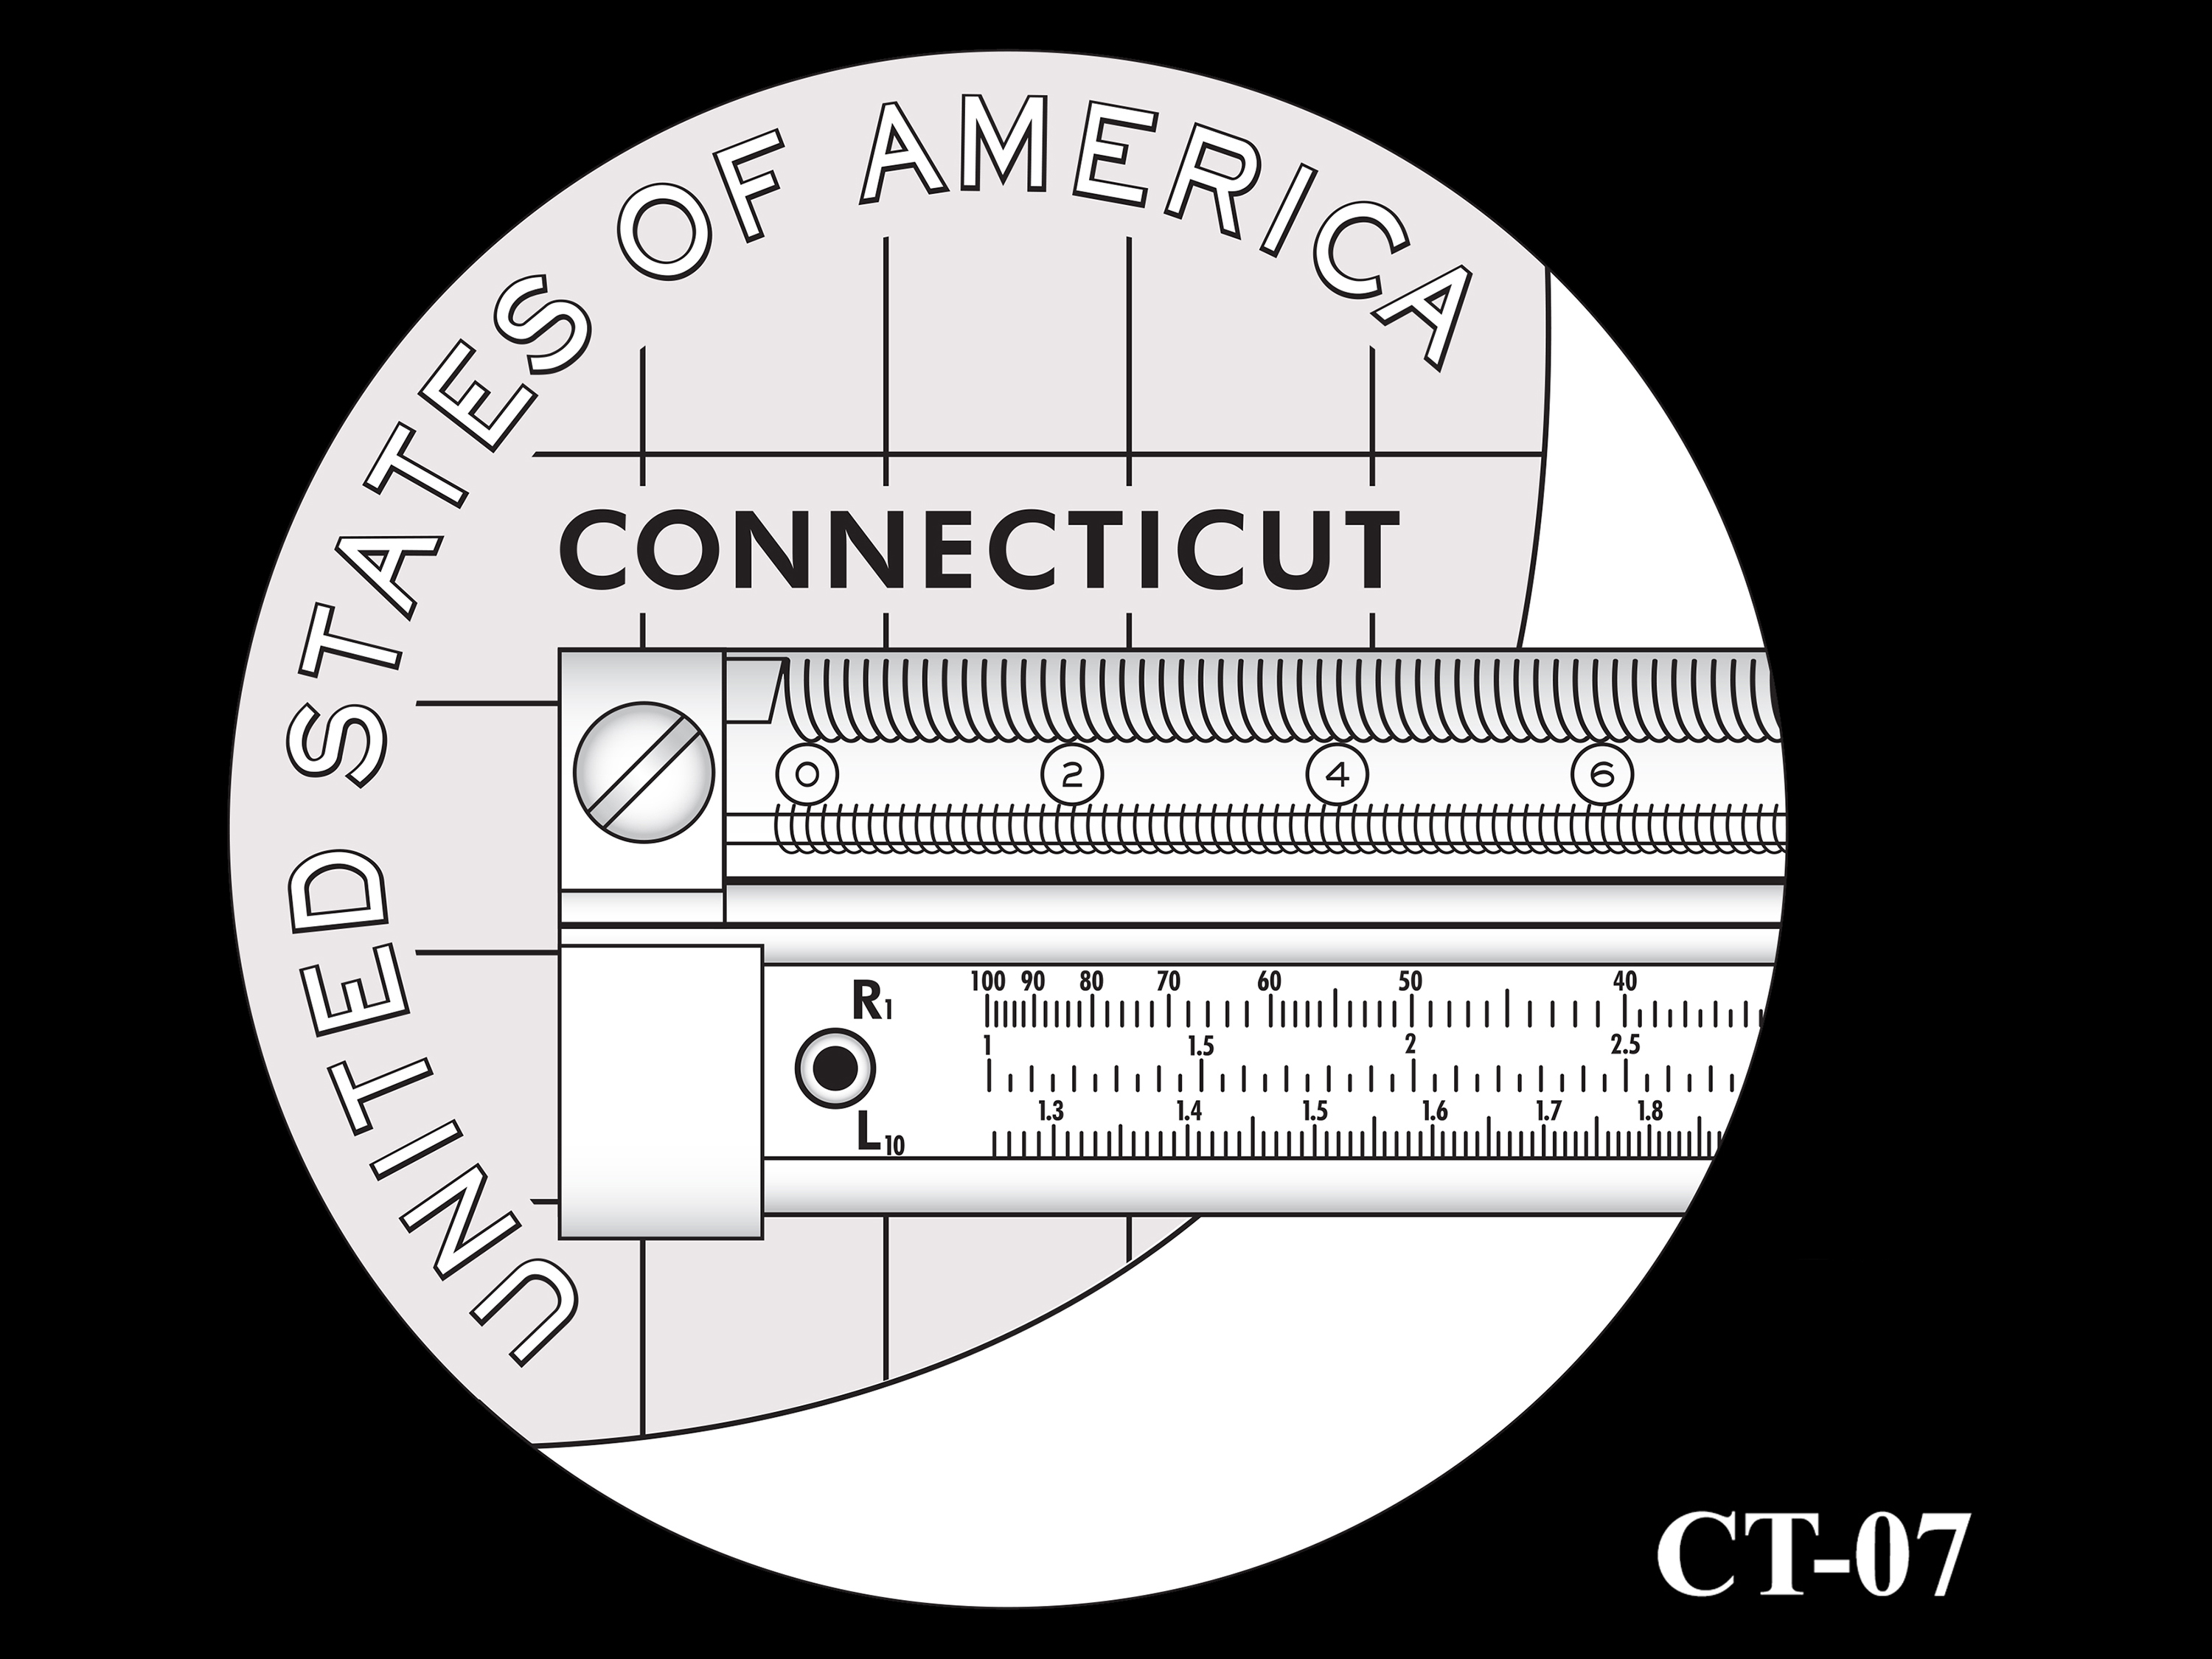 CT-07 -- 2020 American Innovation $1 Coin - Connecticut